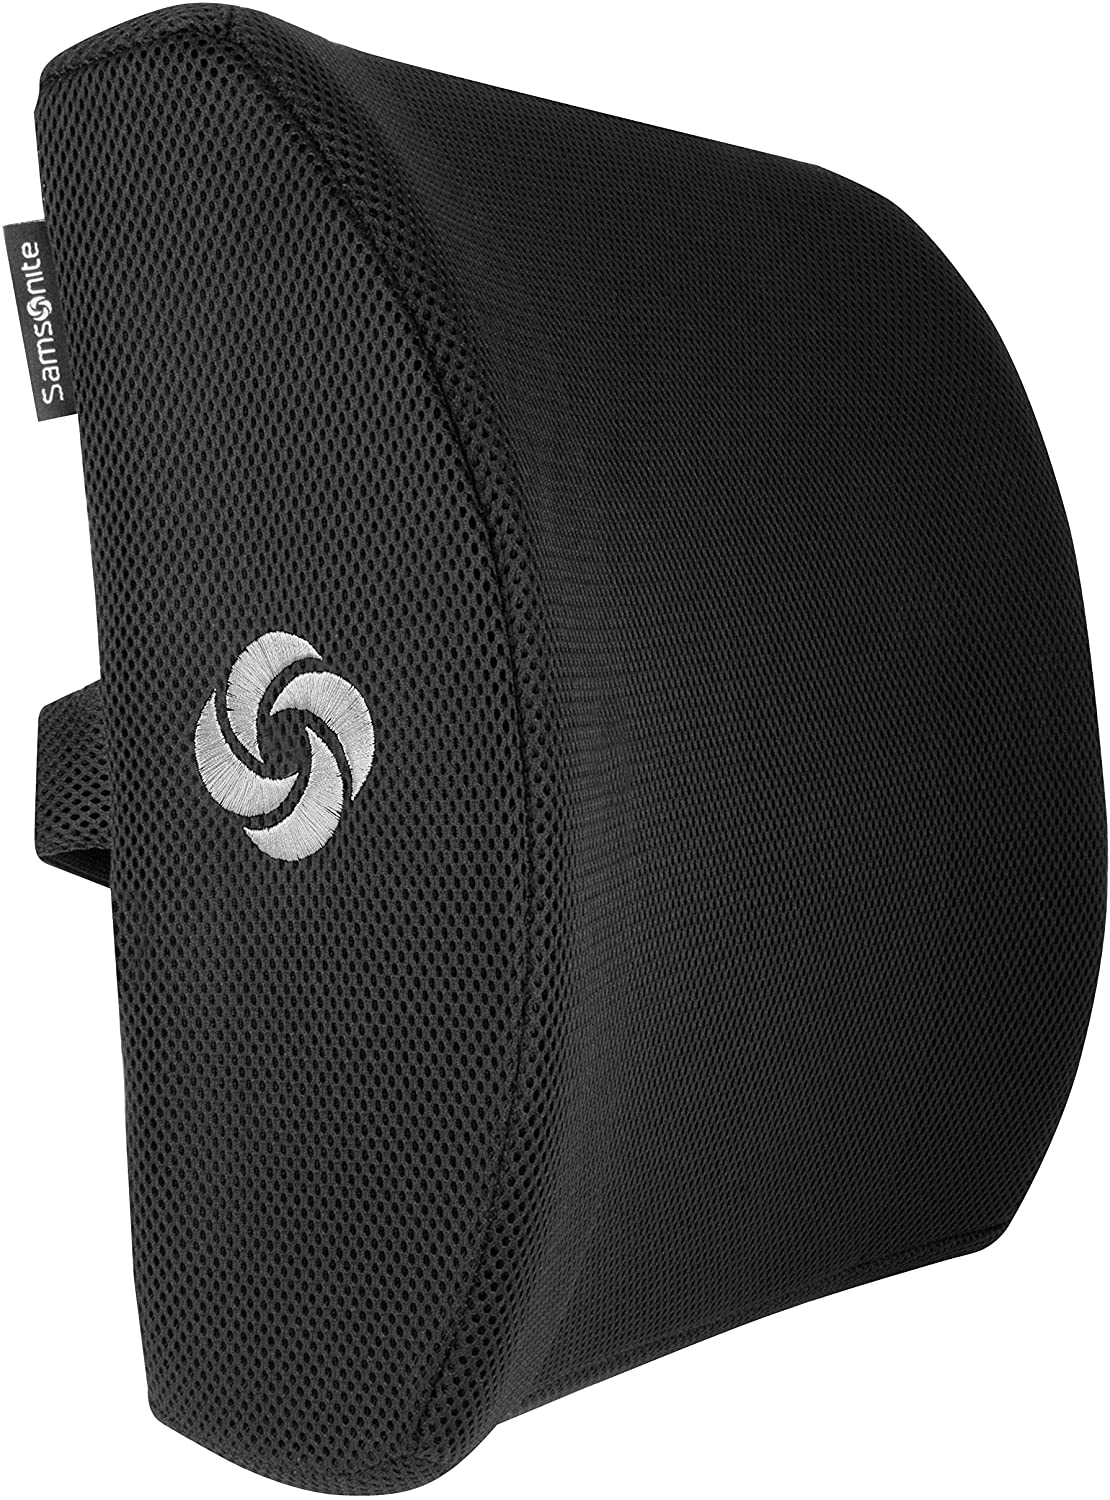 Samsonite SA5243 Ergonomic Lumbar Support Pillow